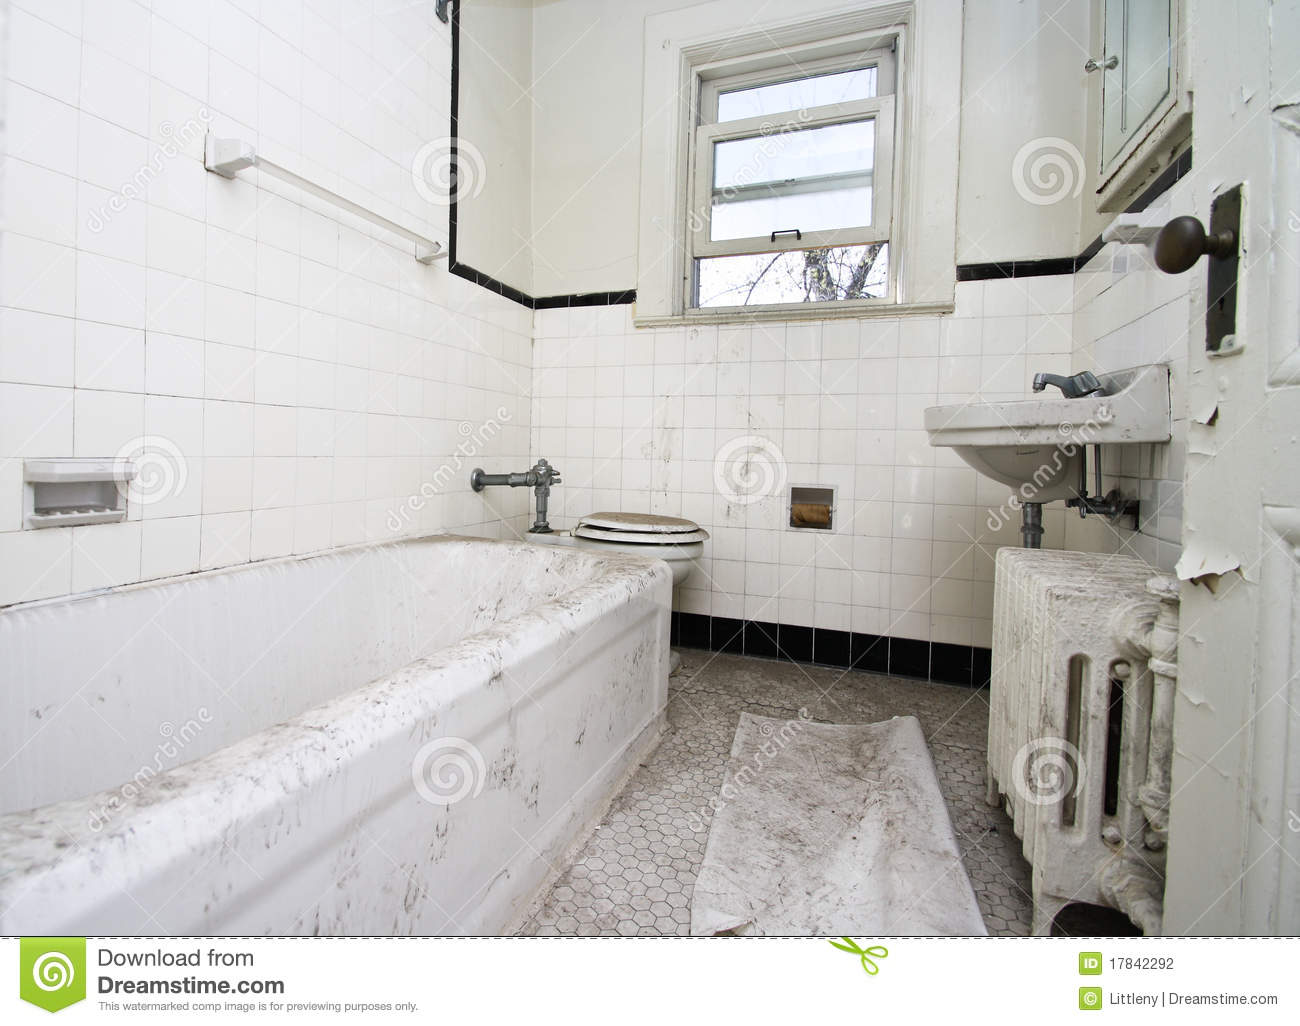 Filthy Bathroom. Filthy Bathroom Stock Photography   Image  17842292